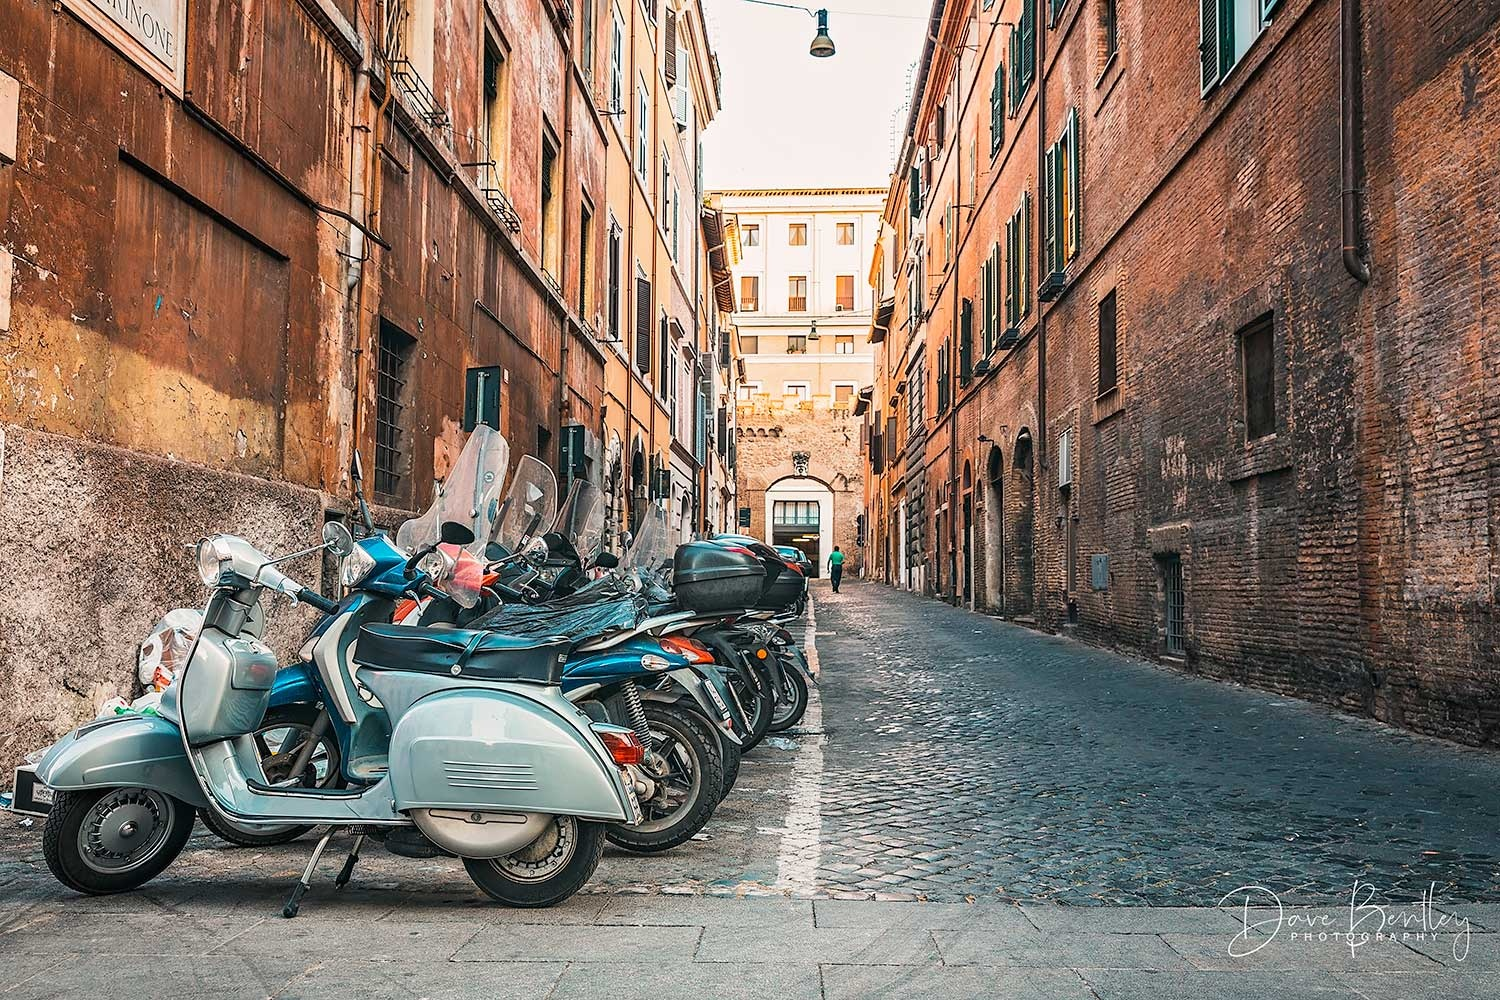 Streets of Rome by Dave Bentley